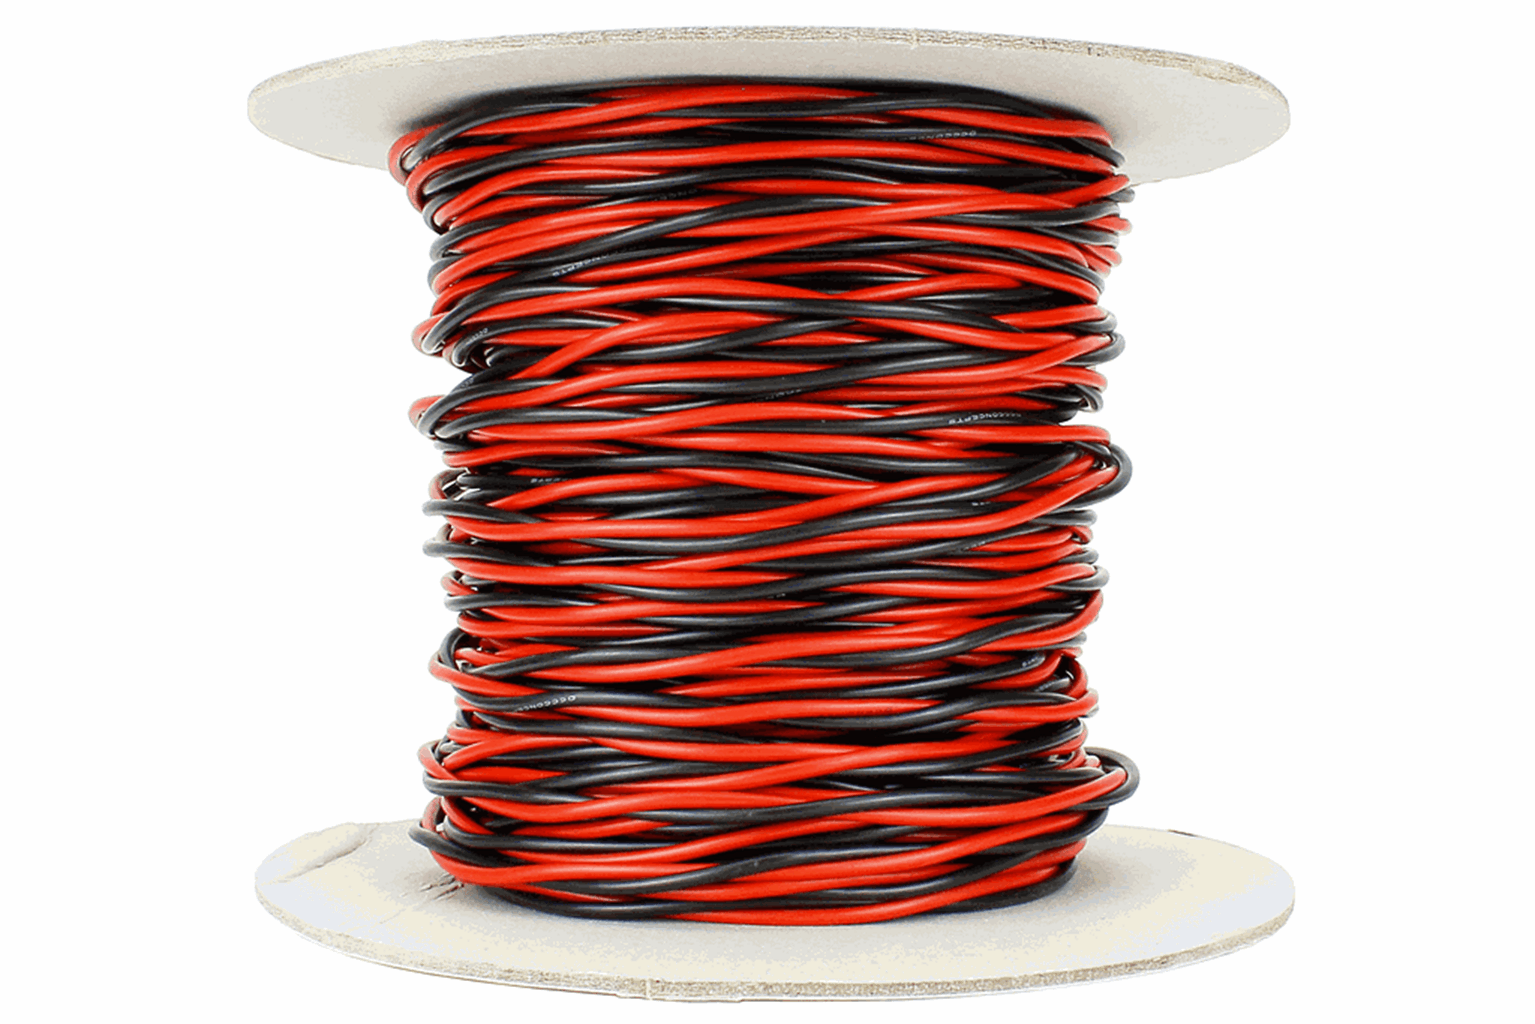 Twisted Bus Wire 50m of 1.5mm (15g) Twin Red/Black